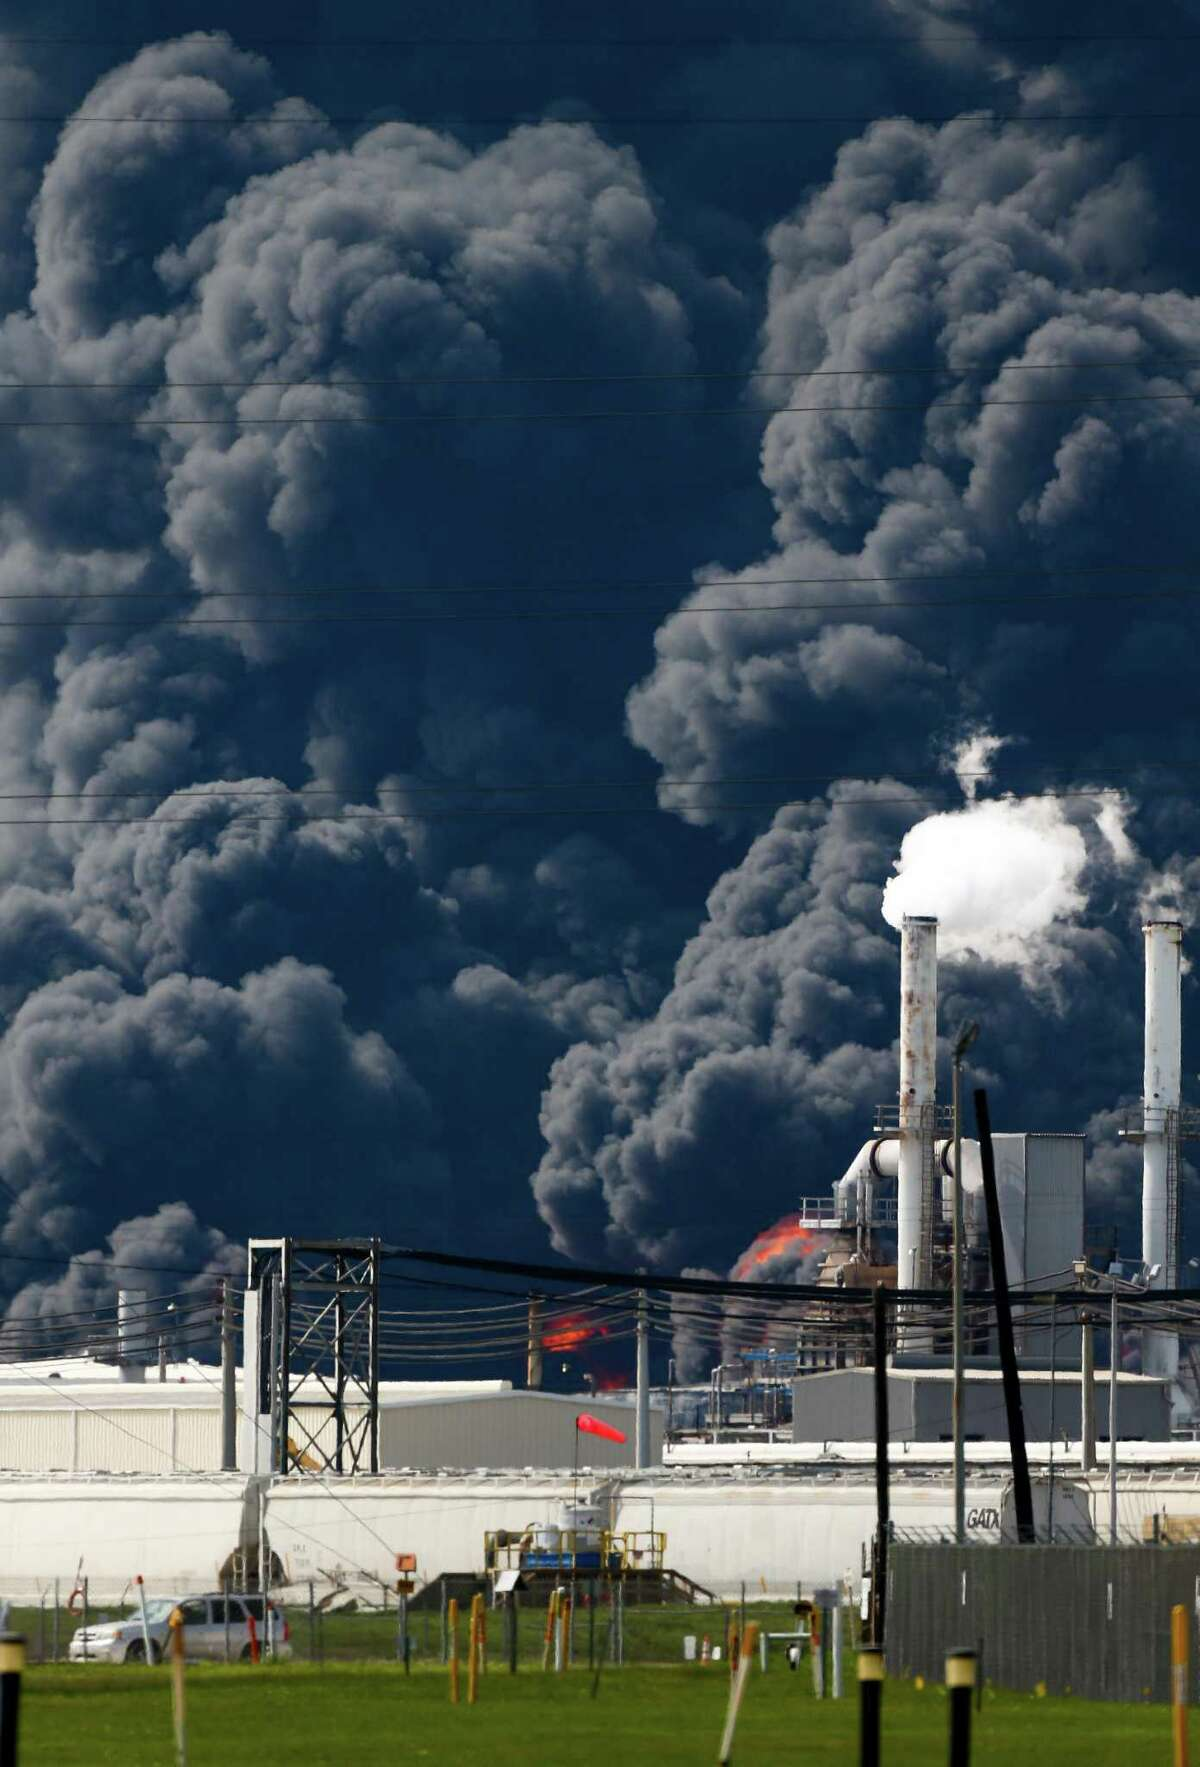 Firefighters battle the petrochemical fire at Intercontinental Terminals Company, which grew in size due to a lack of water pressure last night, Tuesday, March 19, 2019, in Deer Park, Texas.